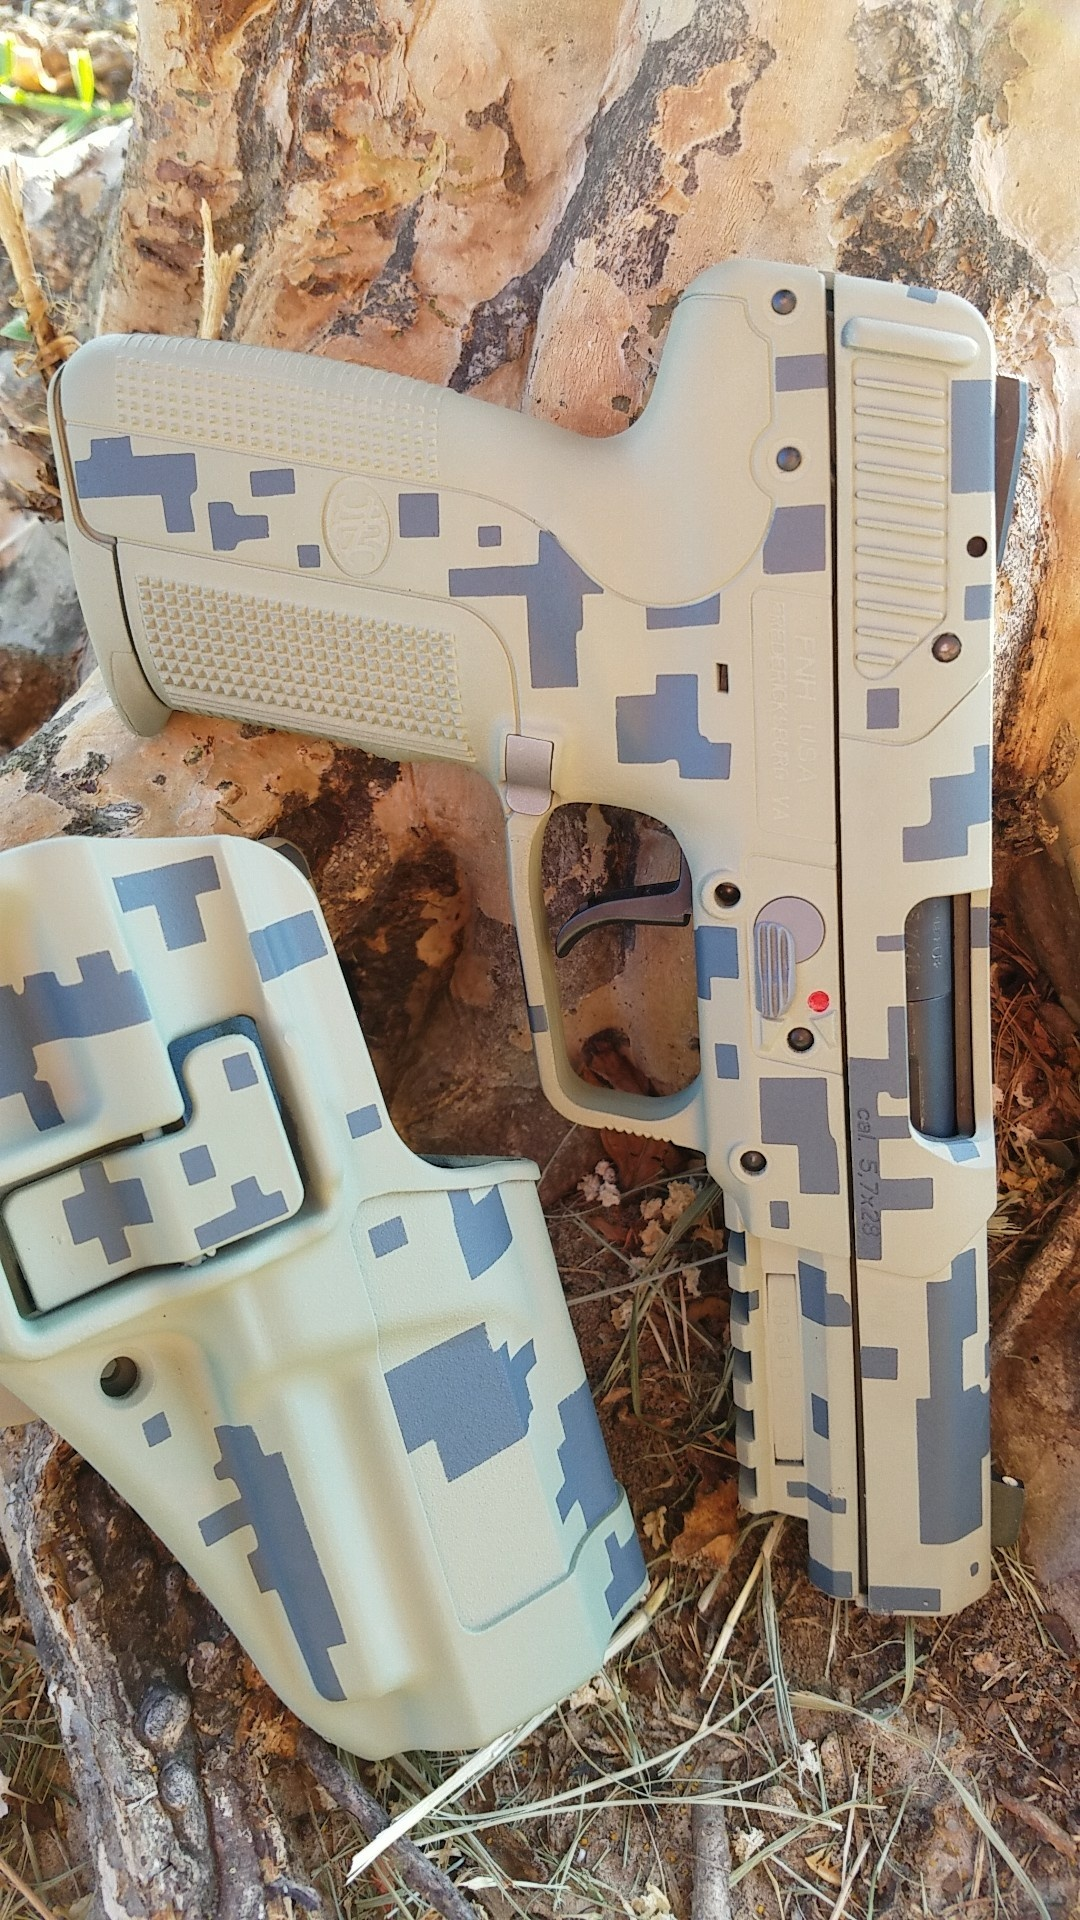 cerakote digital camo tan and black